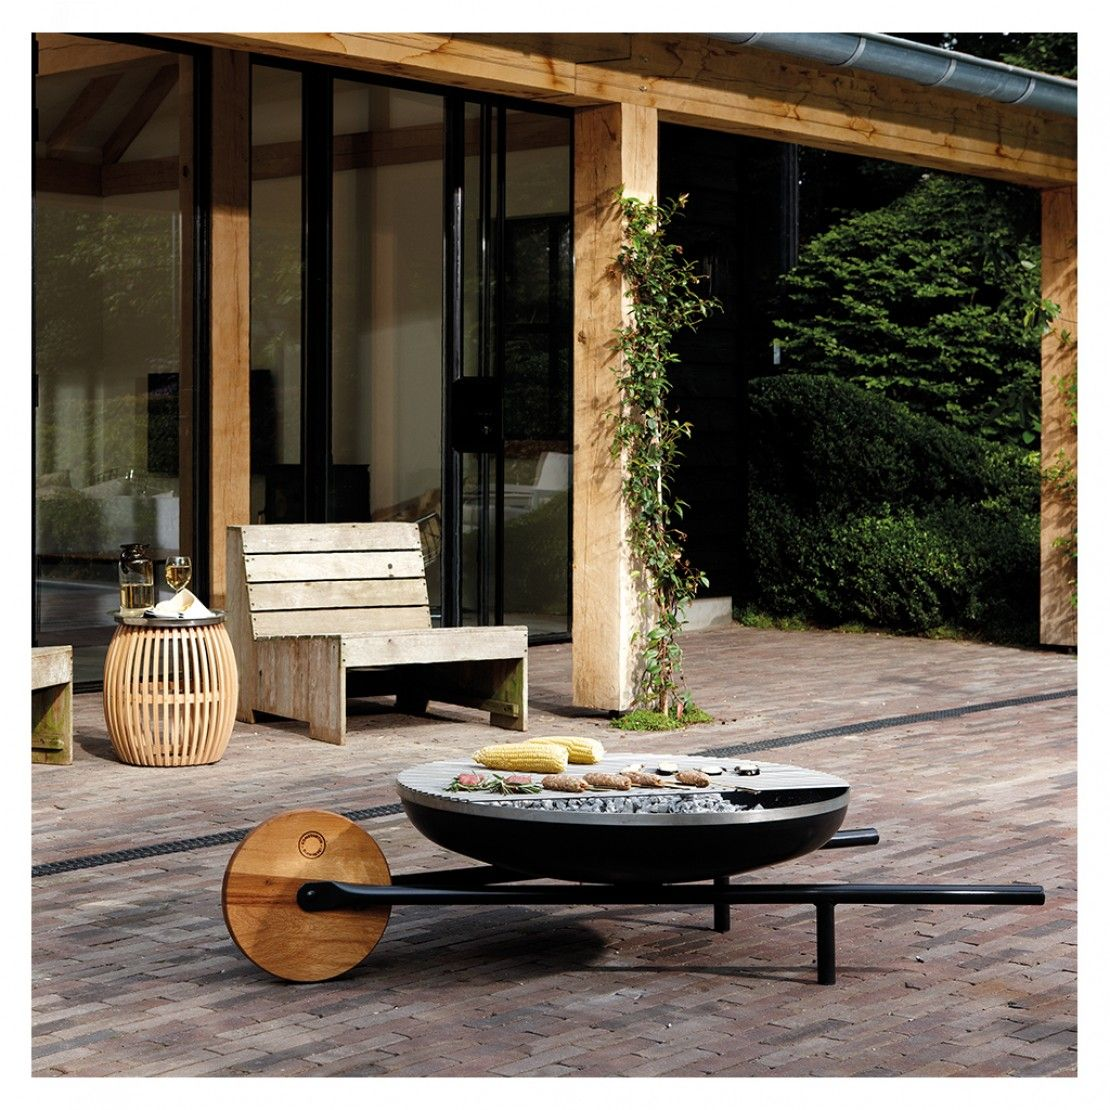 barrow bbq fire pit from conran garden in 2019 fire bowls rh pinterest com